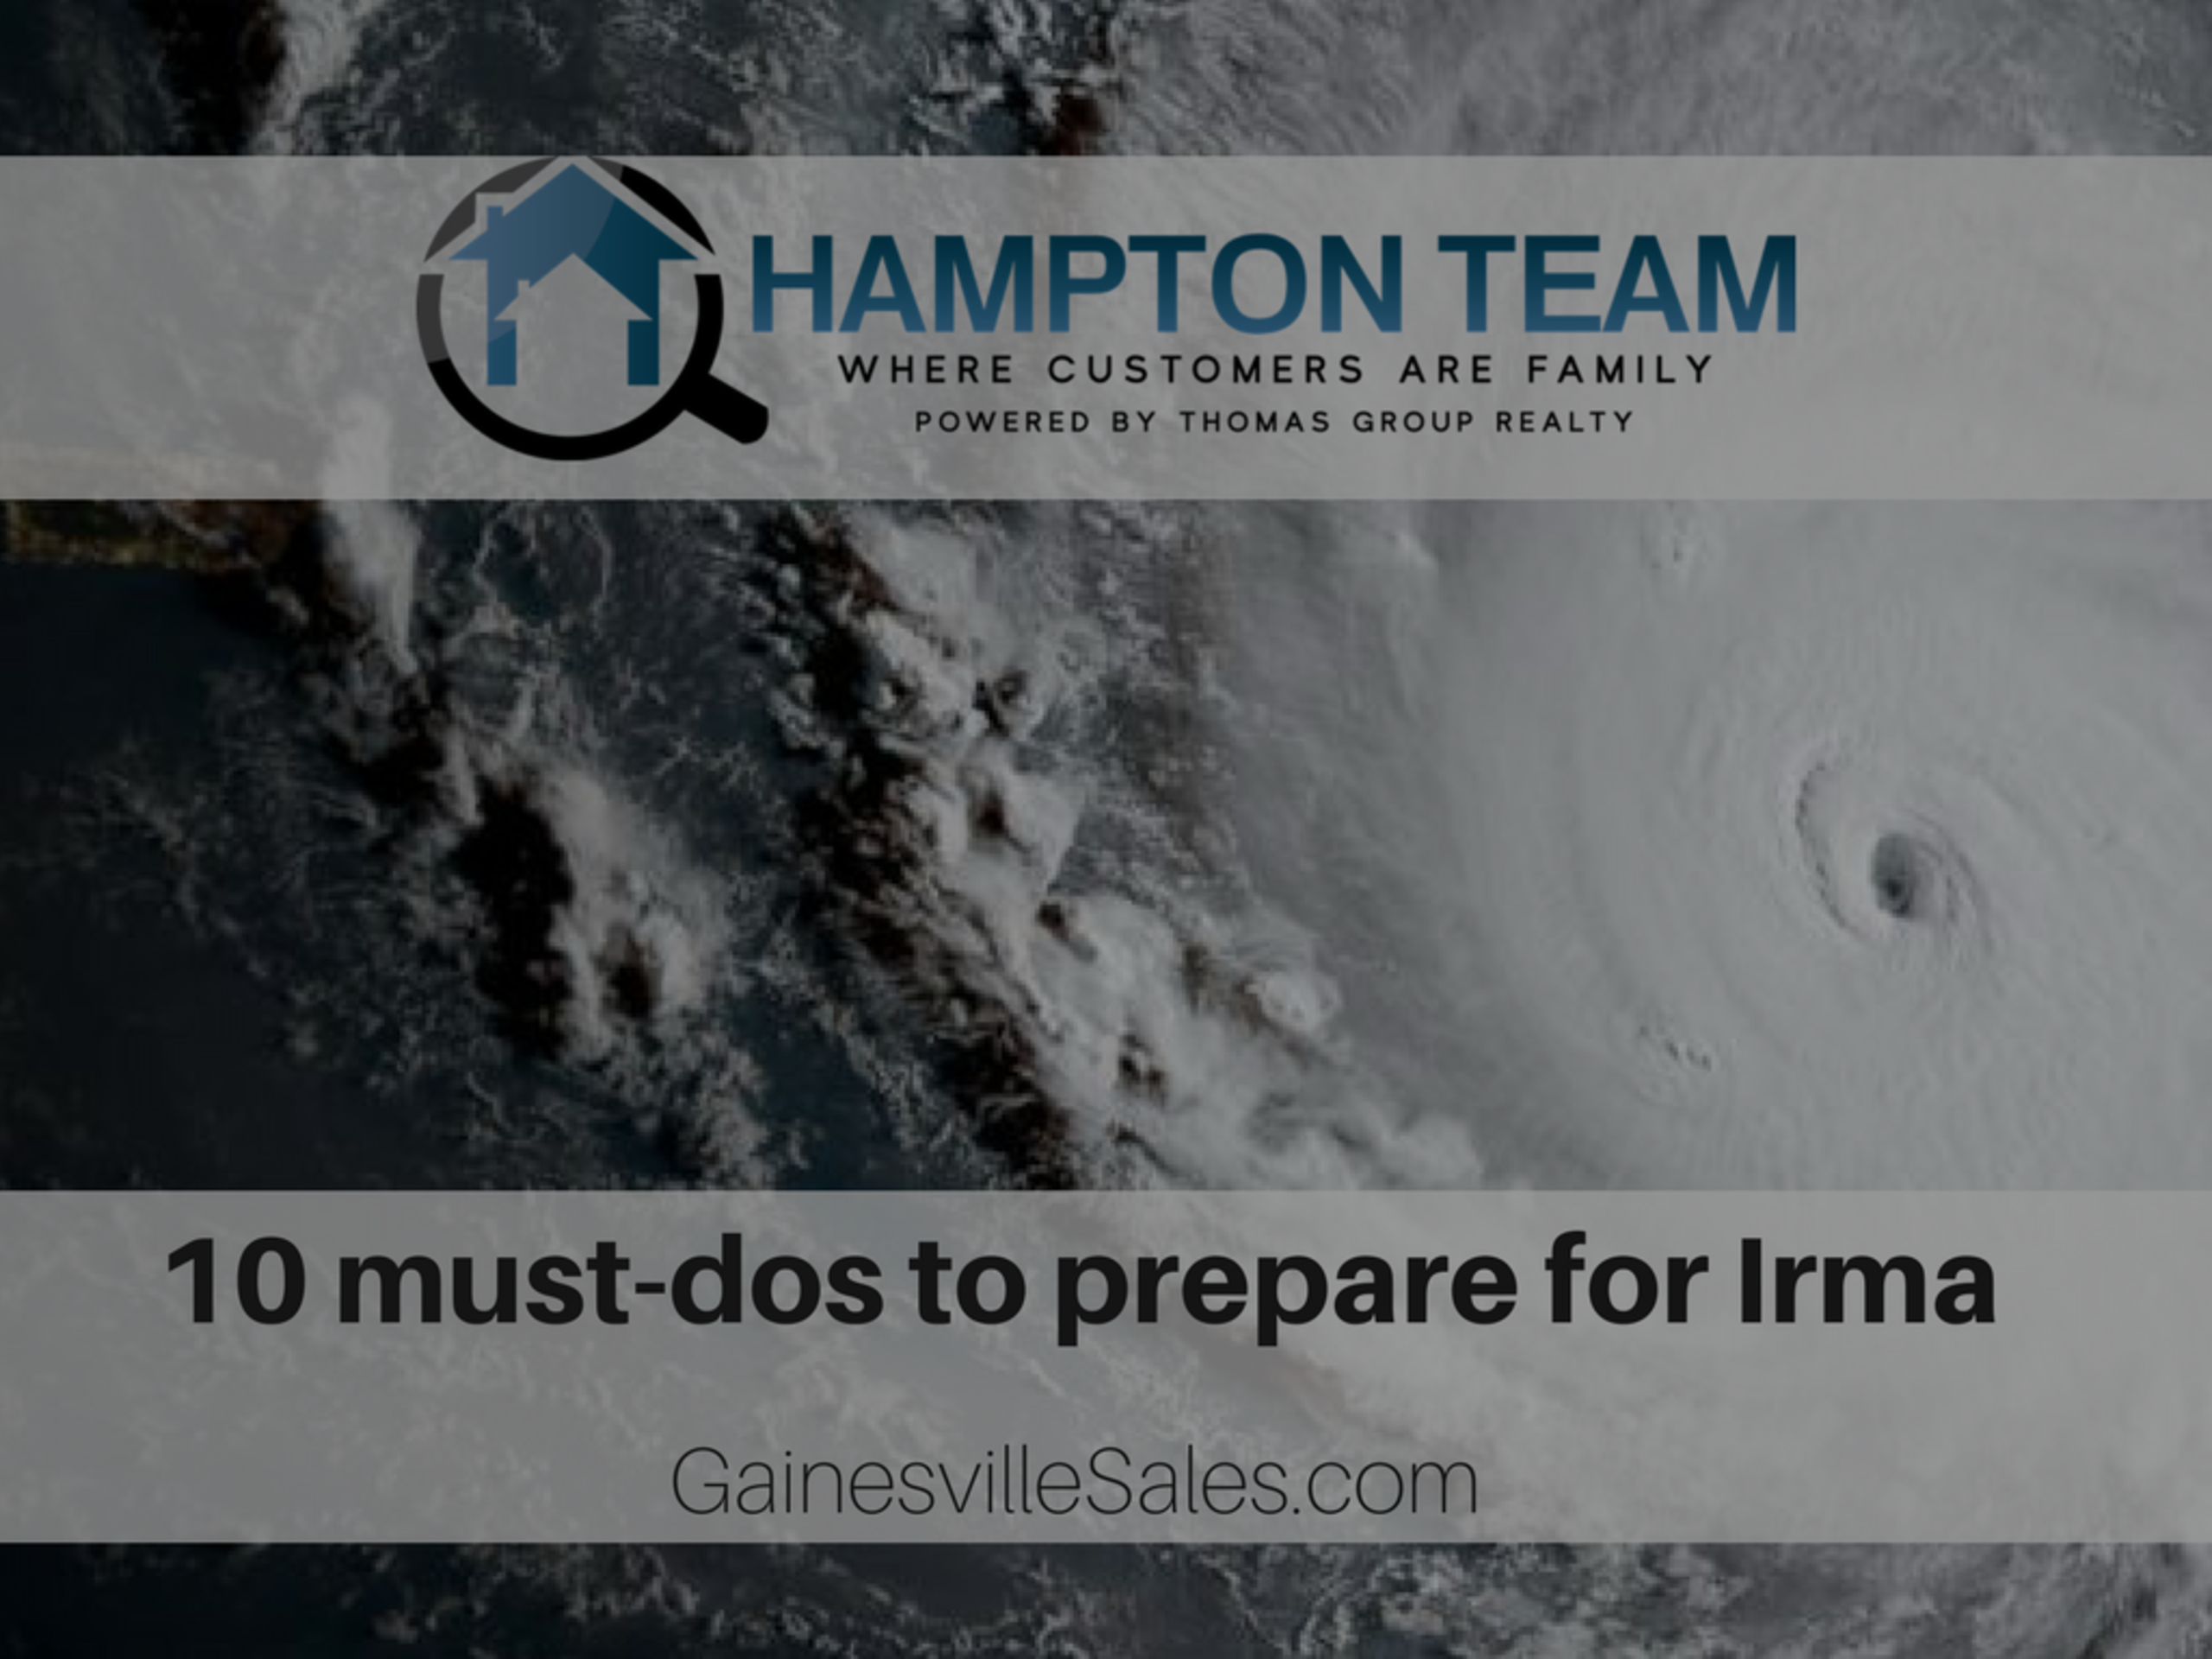 10 must-dos to prepare for Hurricane Irma